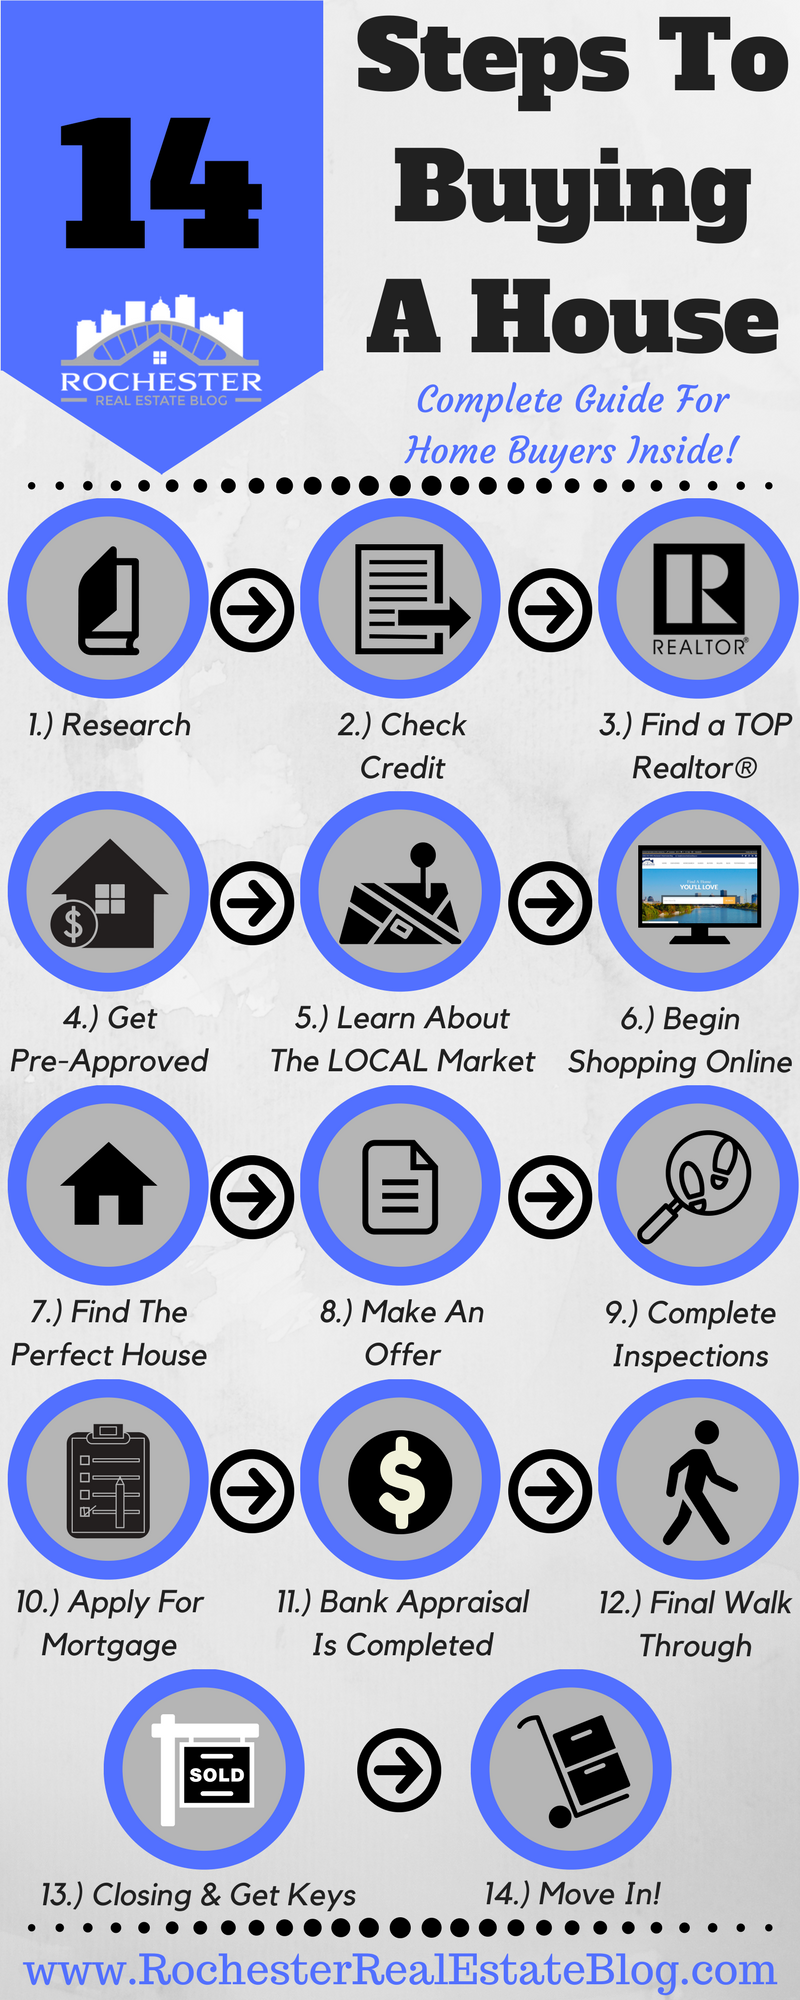 14-Steps-To-Buying-A-House-A-Complete-Guide-For-Home-Buyers